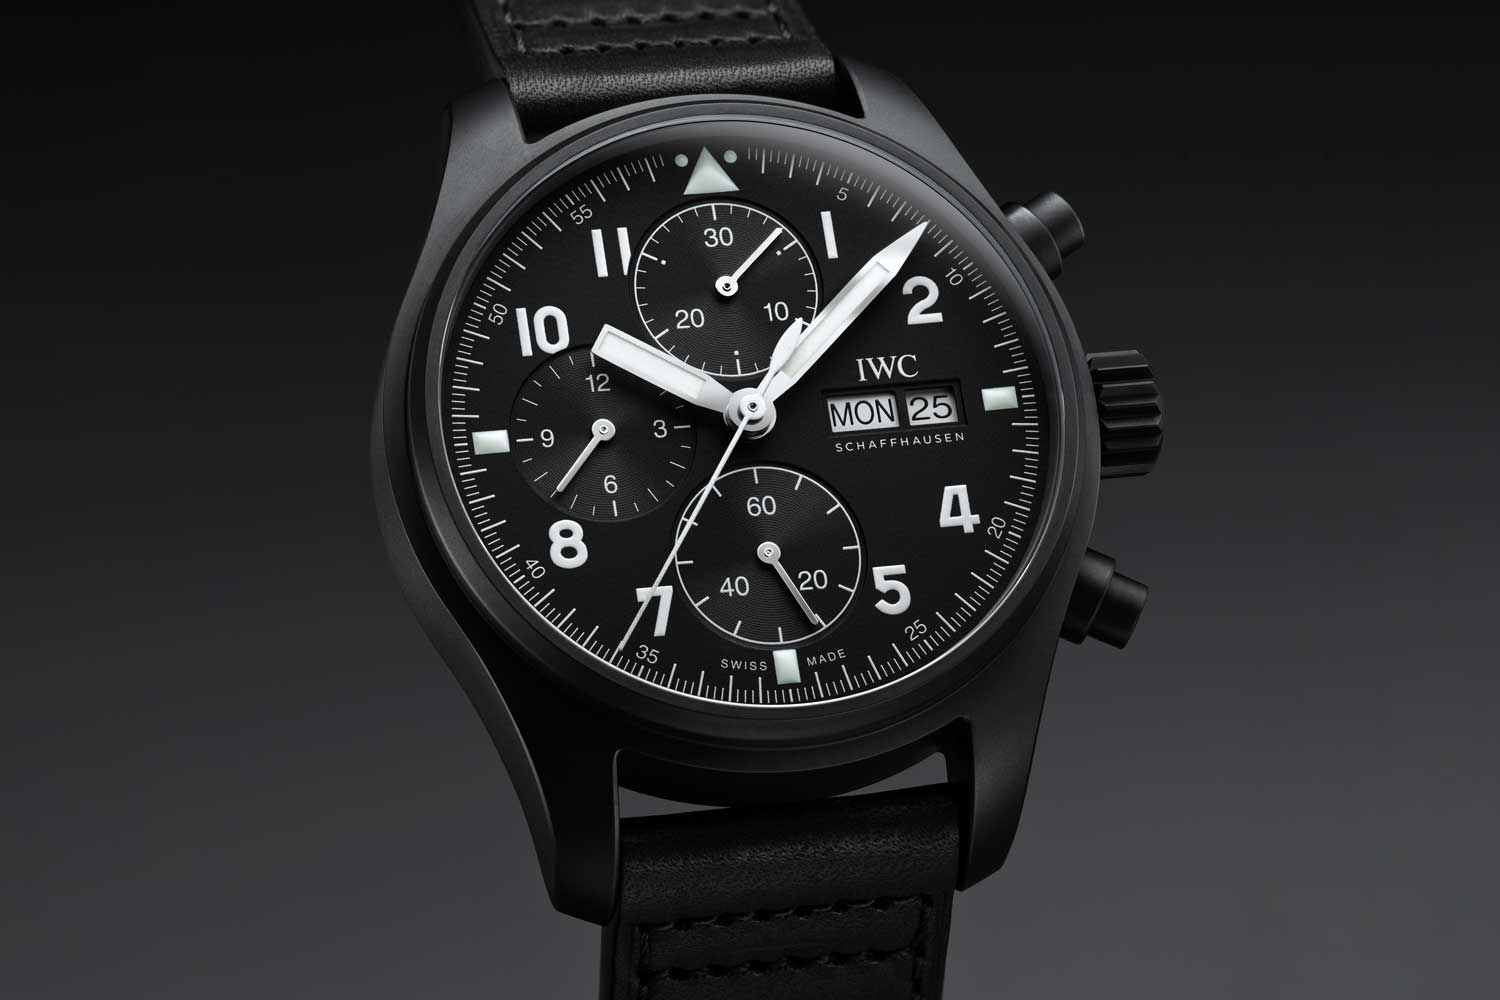 """The watch features the same attributes as the original """"Black Flieger""""—a clean black dial, white painted Arabic numerals and an outer minute/seconds track that features the triangle and two dots at 12 o'clock ."""